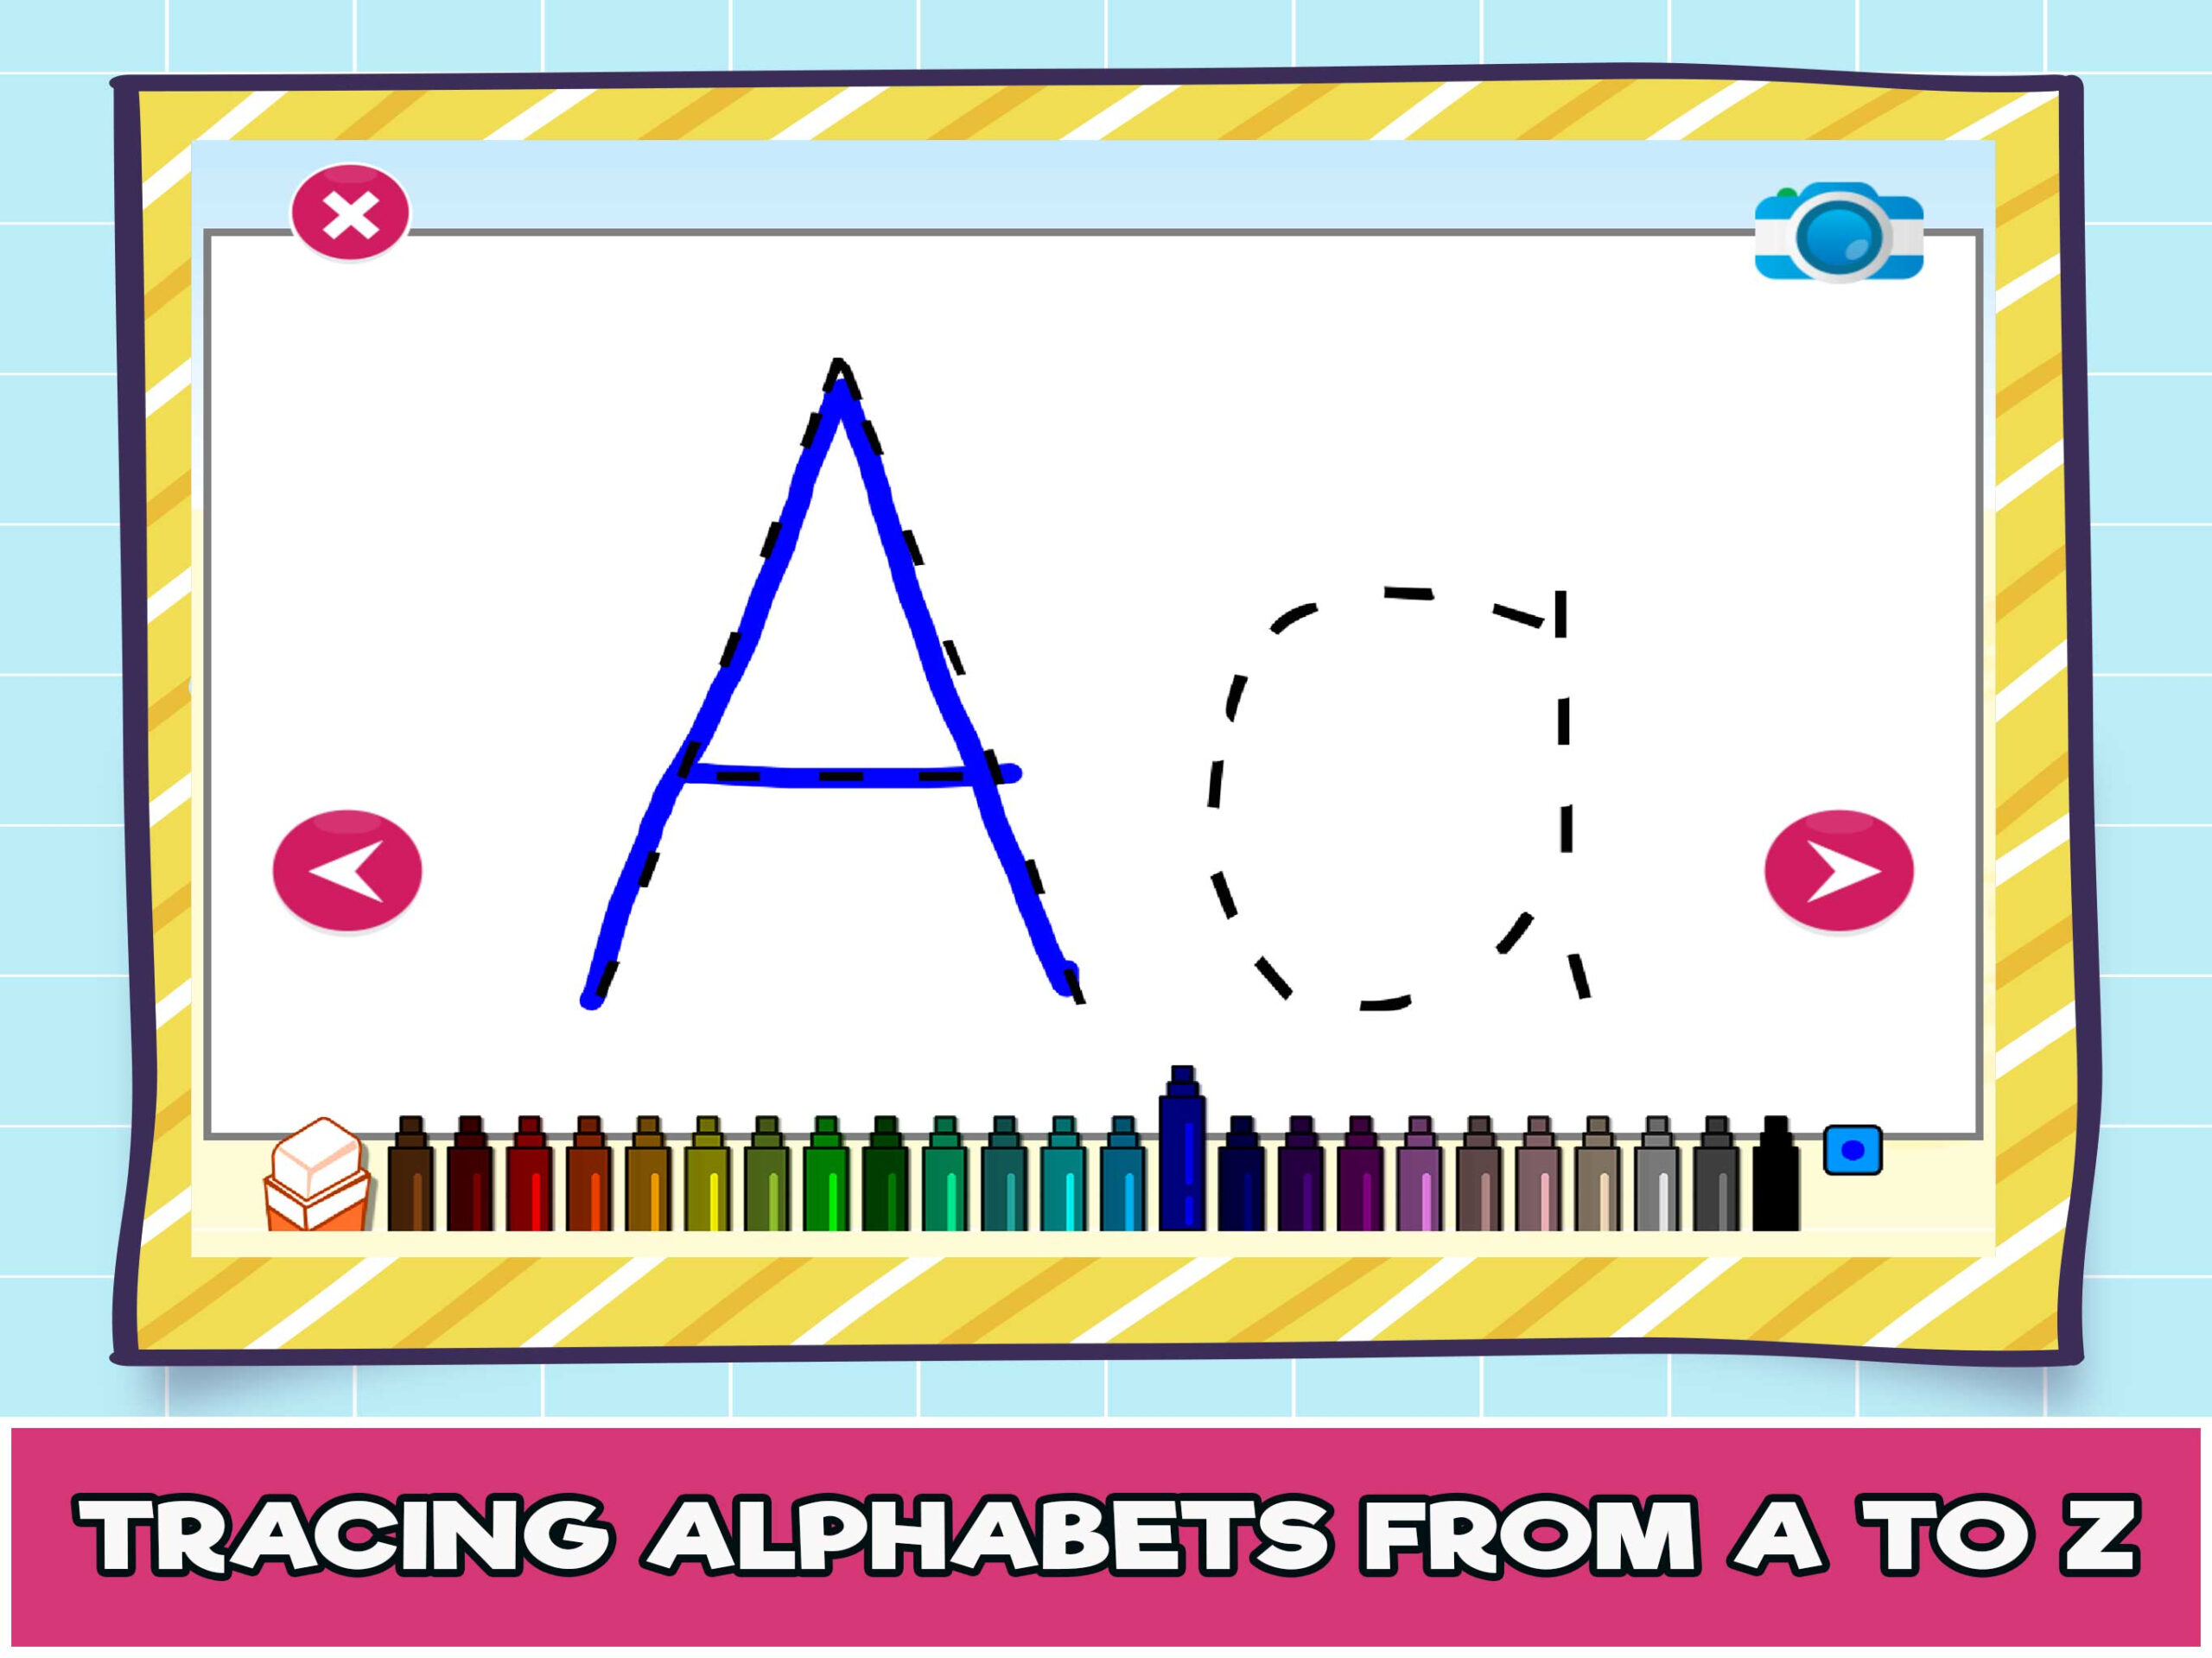 Free Online Alphabet Tracing Game For Kids - The Learning Apps inside Alphabet Tracing Online Free